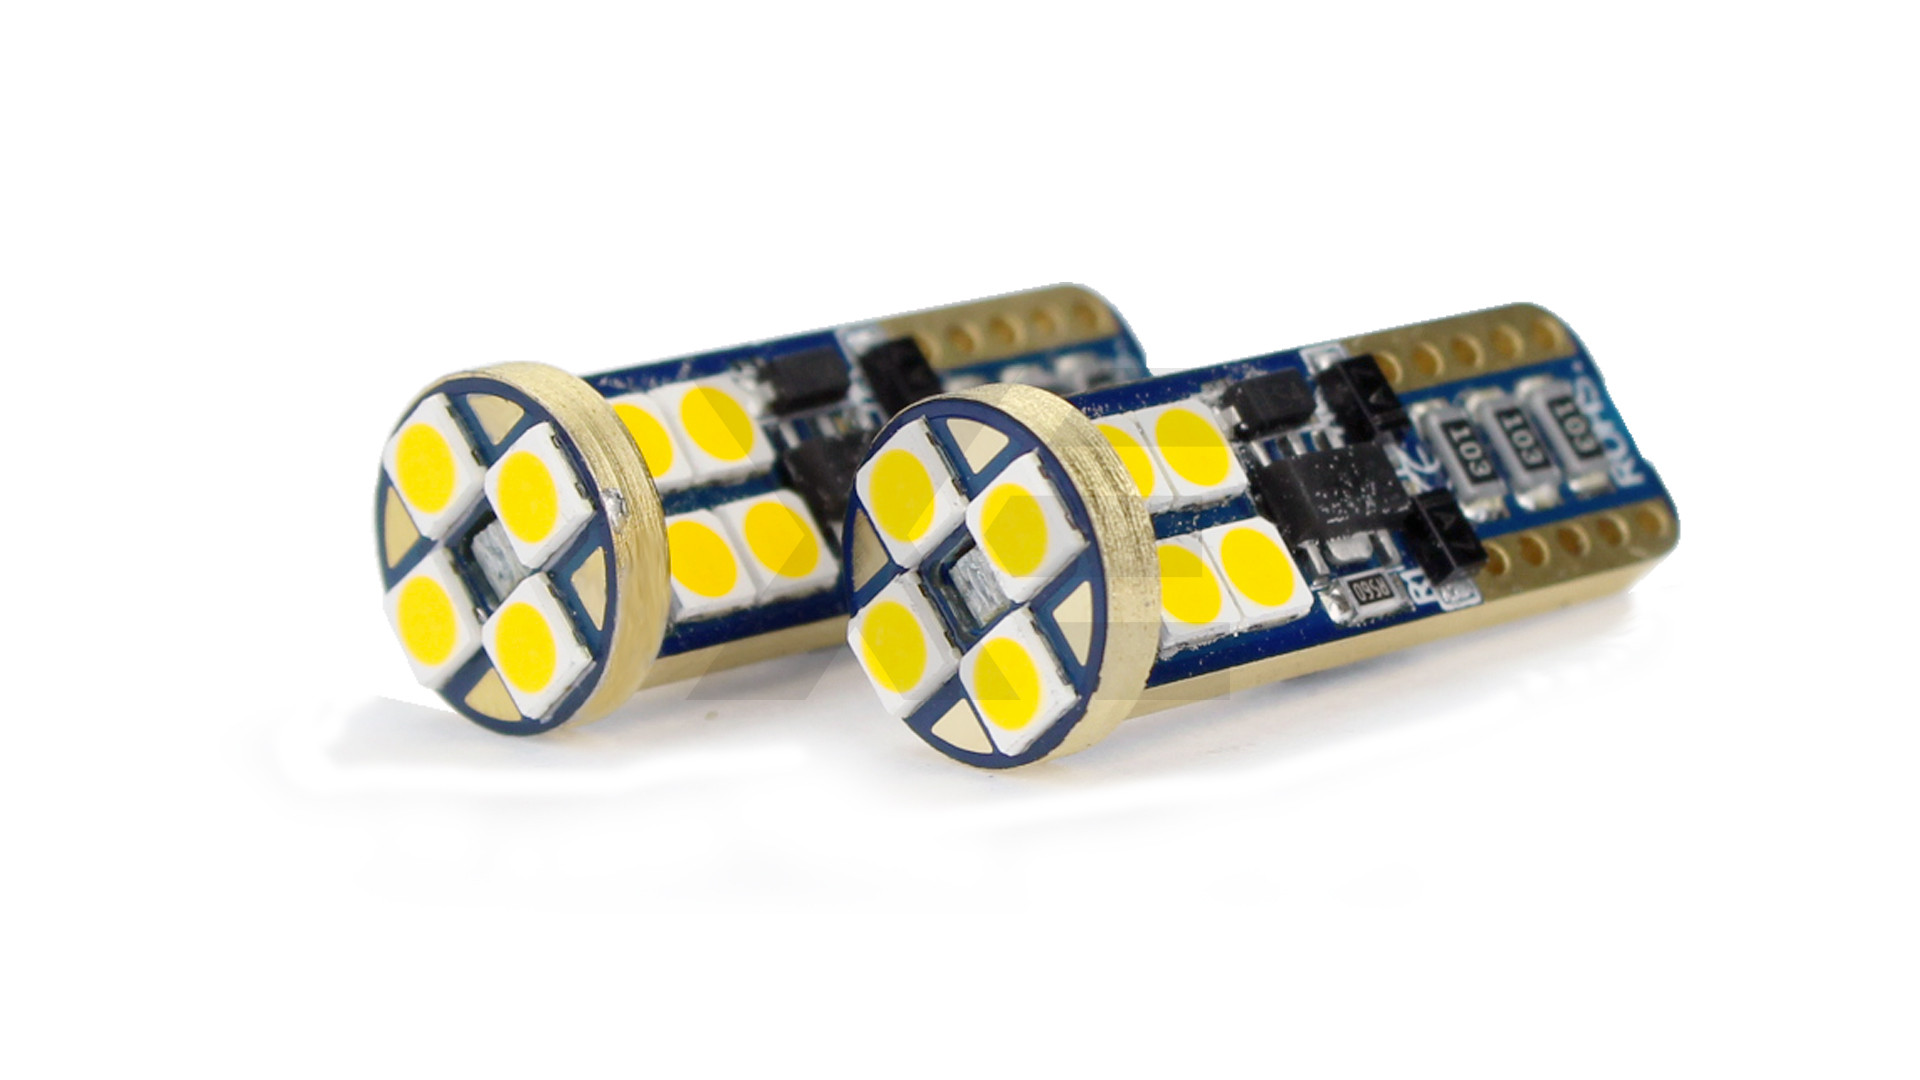 T10 (W5W) Kit LED 360 Gradi Luci Cortesia Bianco Caldo 4500k - XE Gold